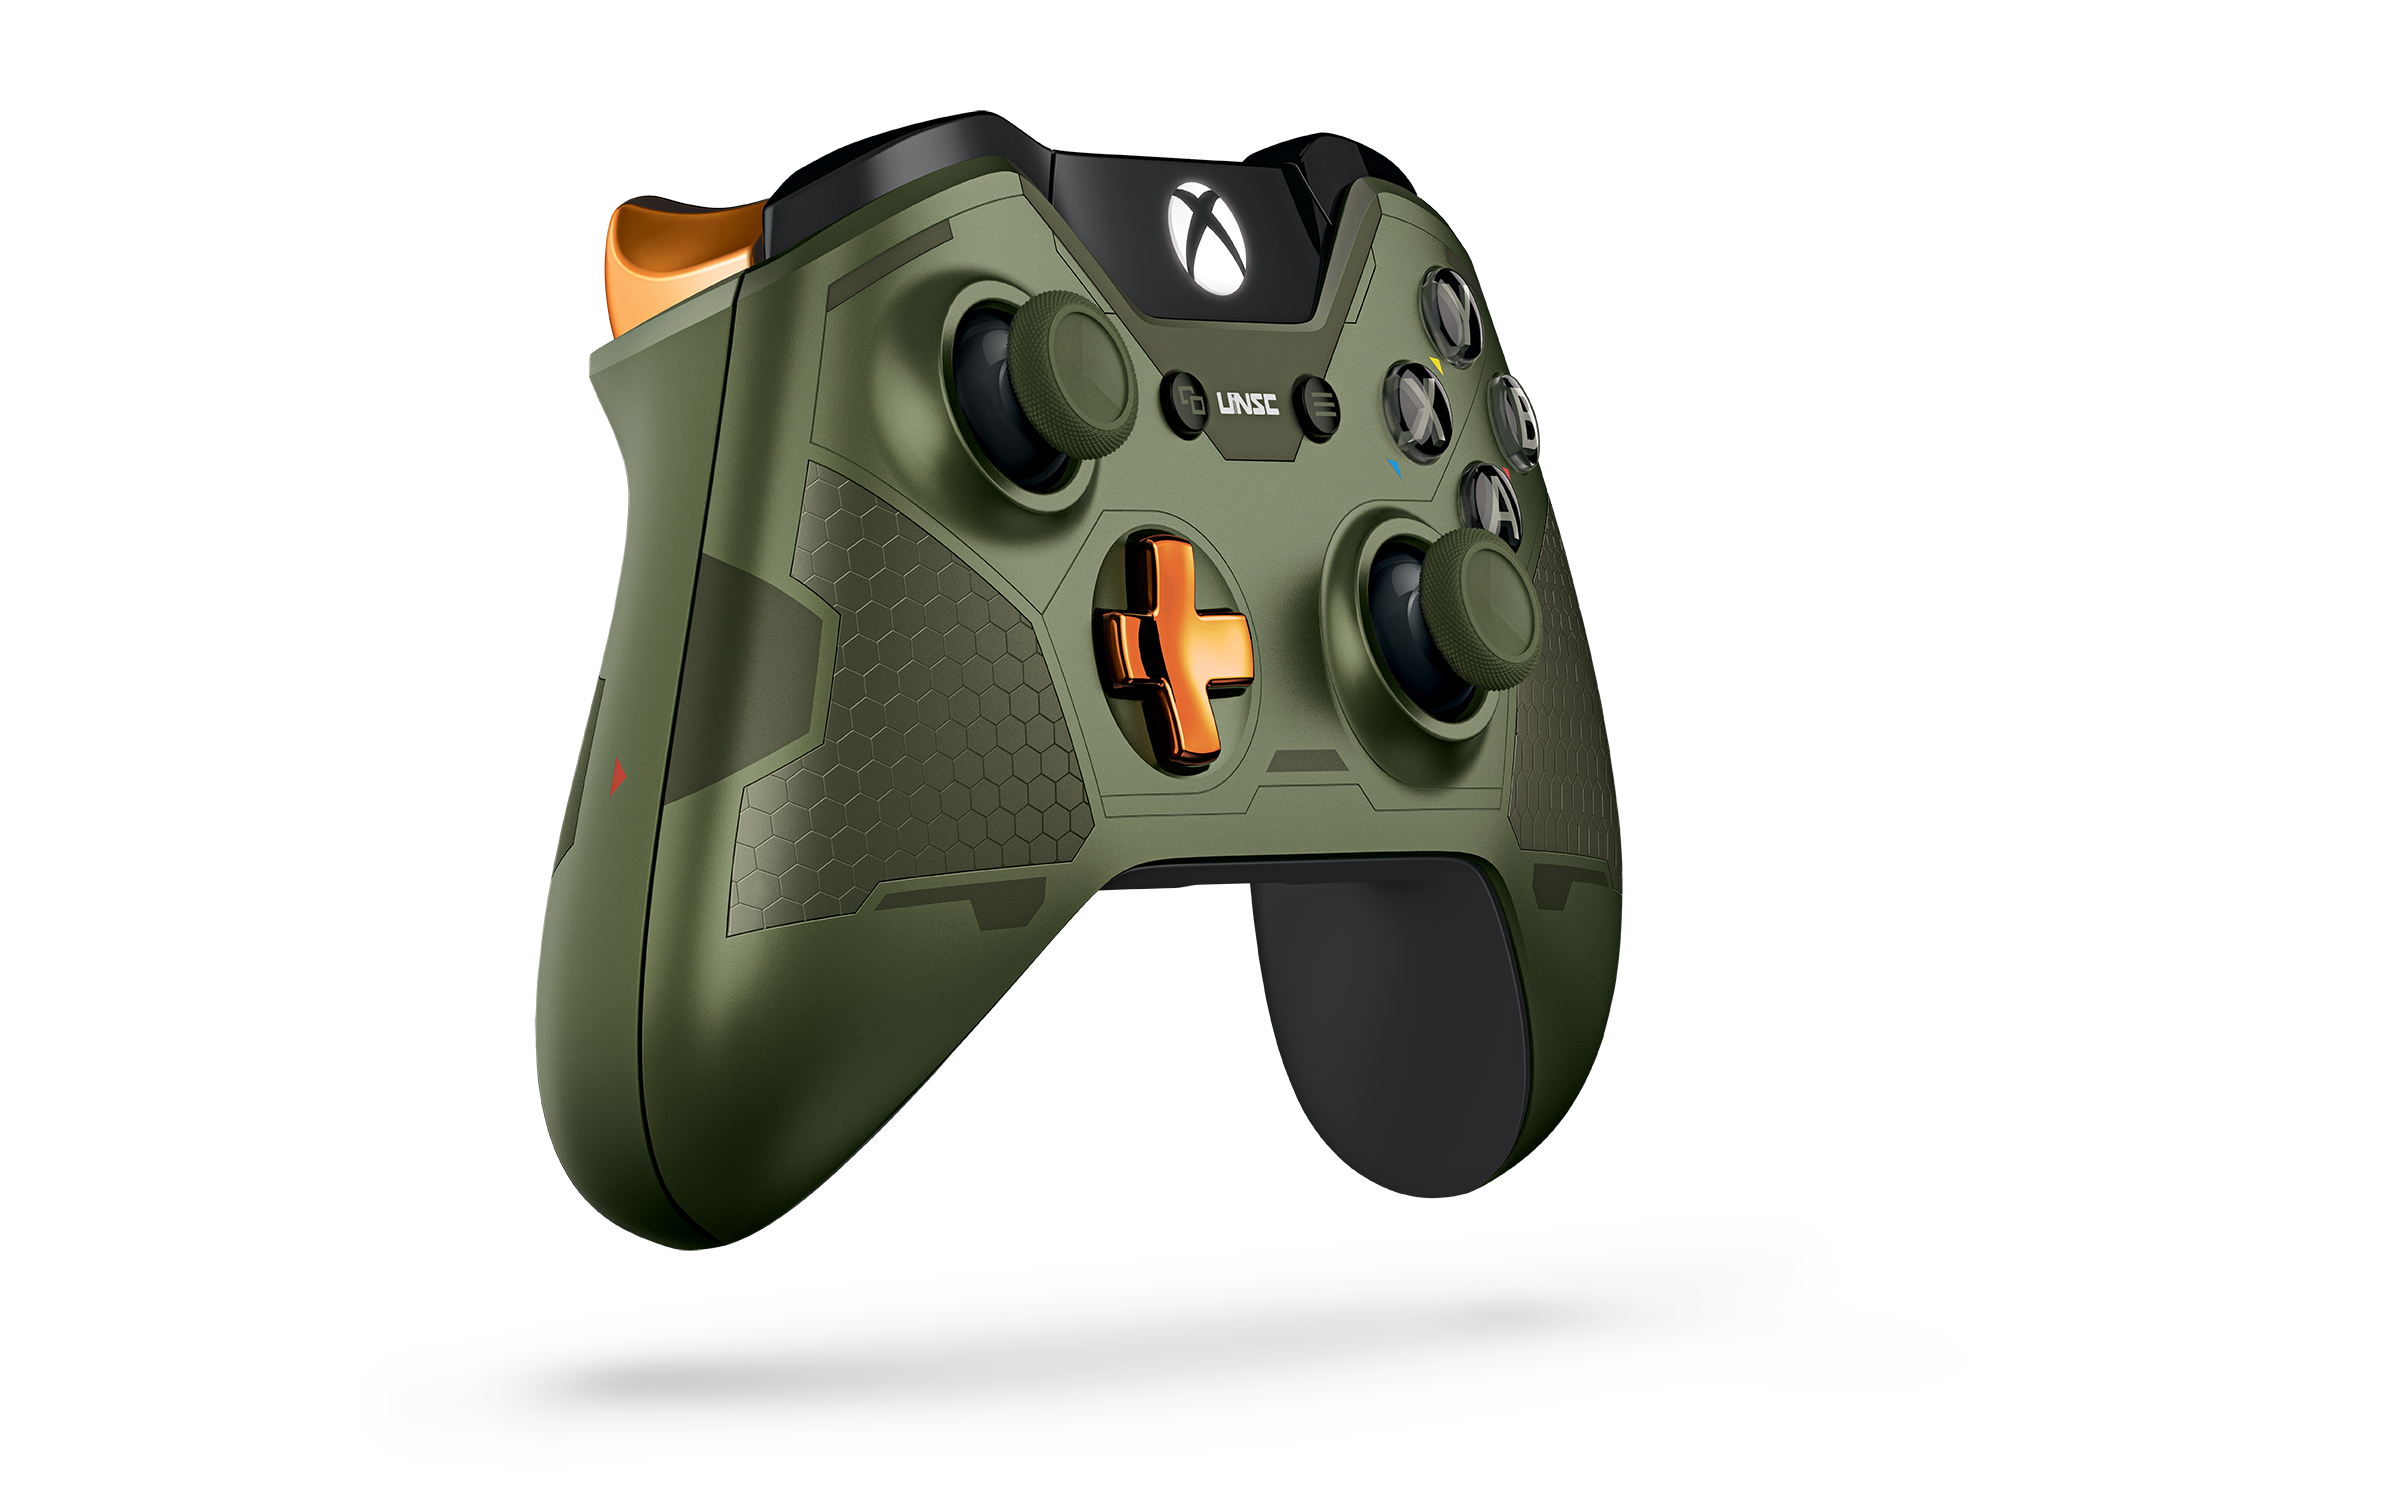 Xbox-One-Limited-Edition-Halo-5-Master-Chief-Controller-Right-Render-png